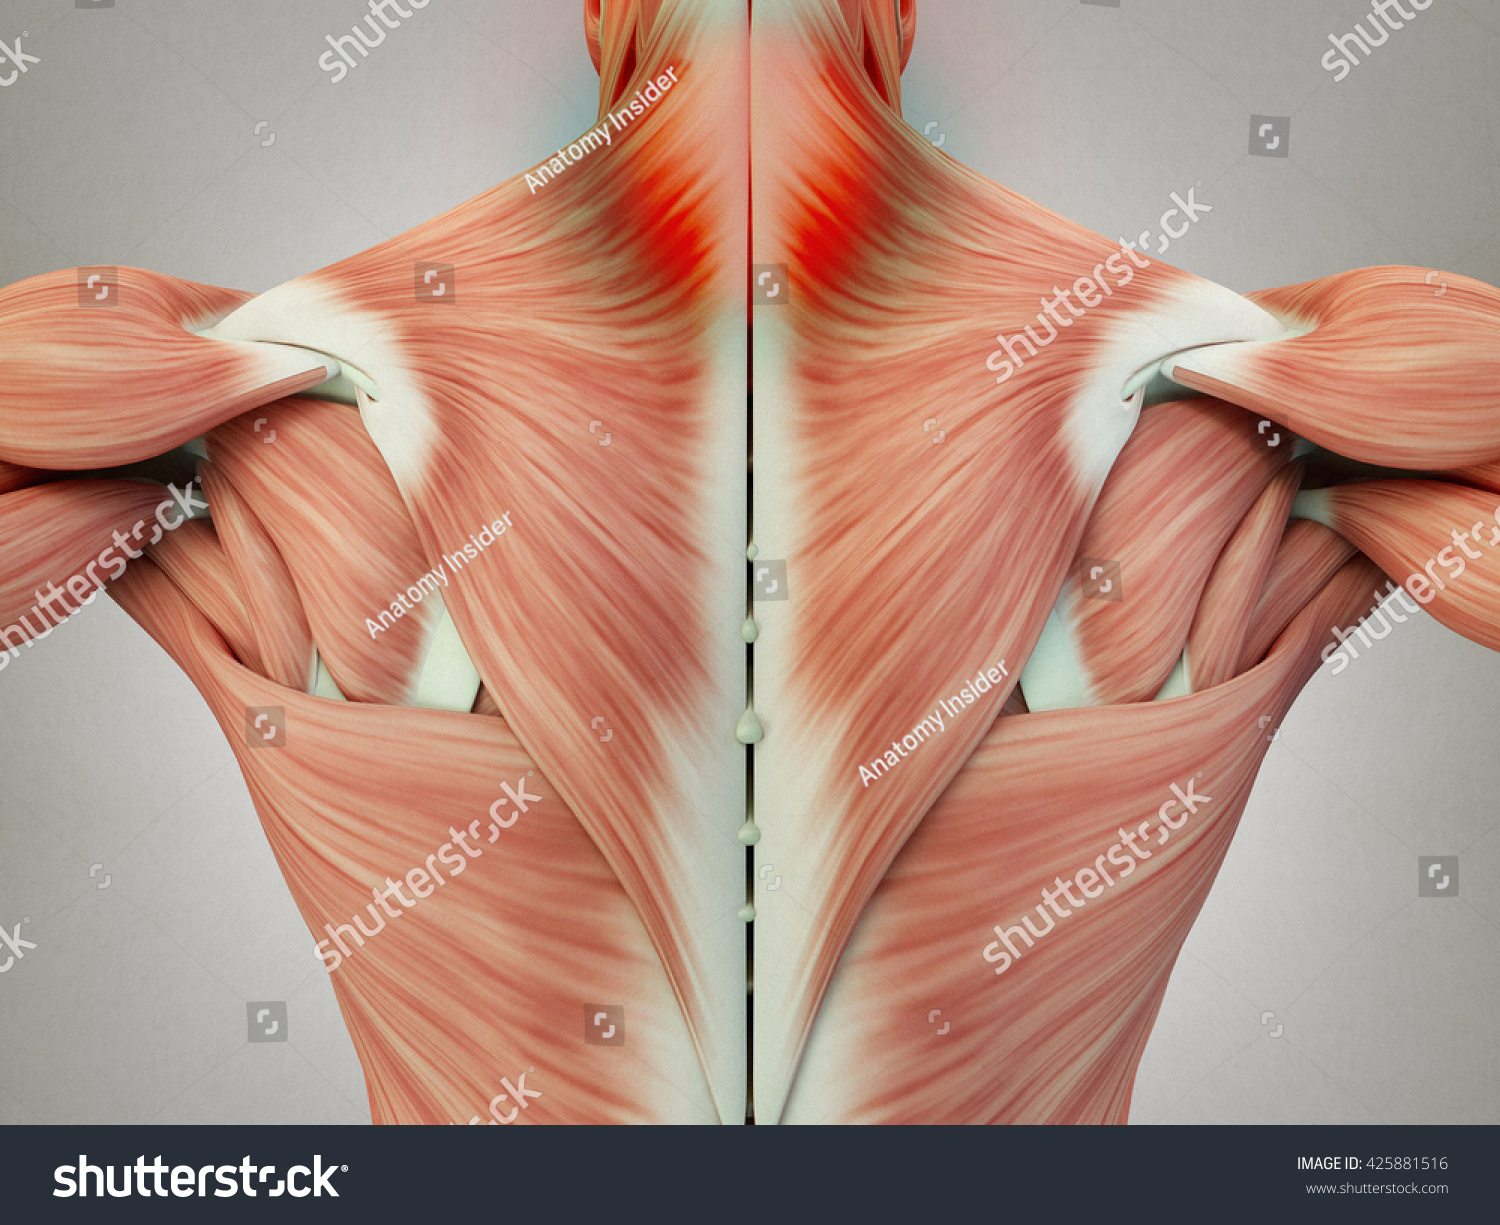 hight resolution of human anatomy torso back muscles pain neck area 3d illustration